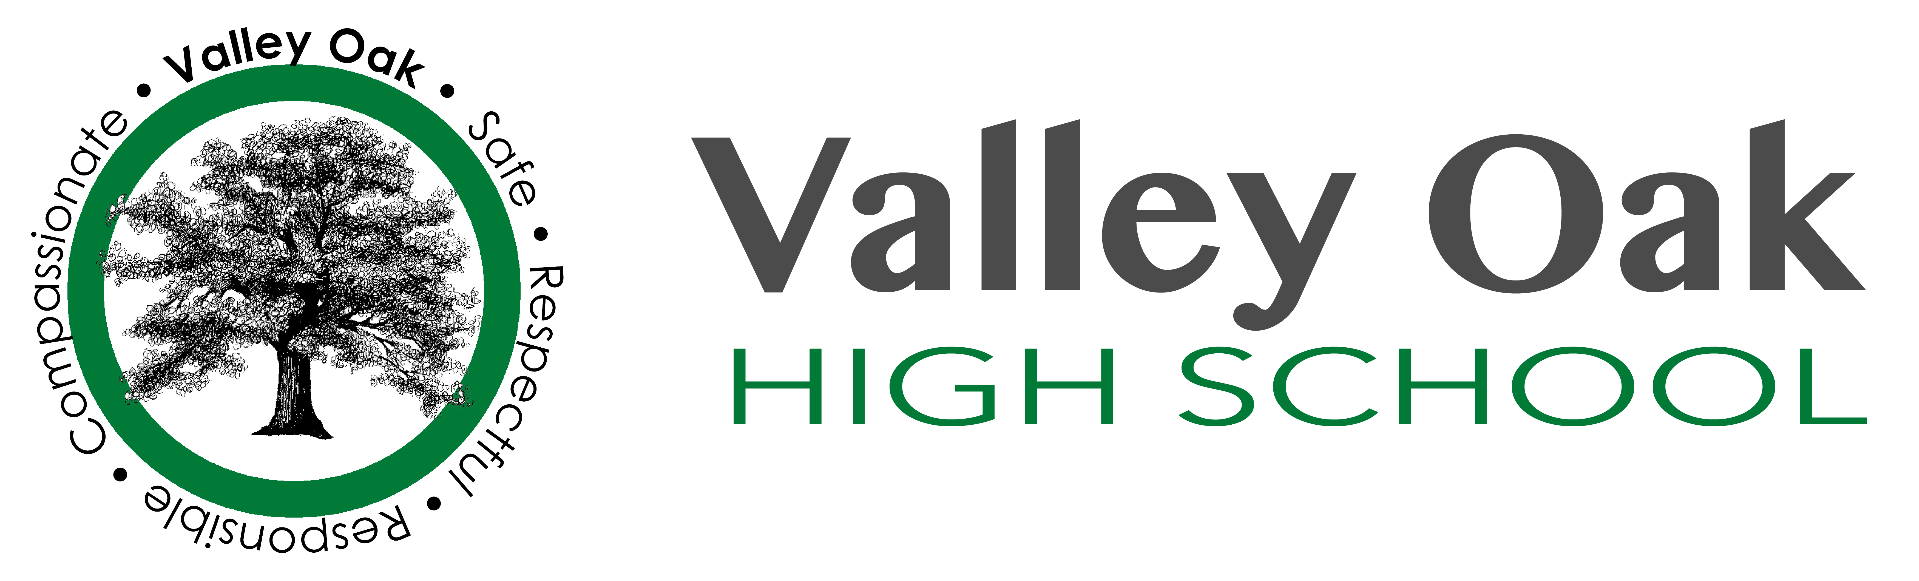 Valley oak home page